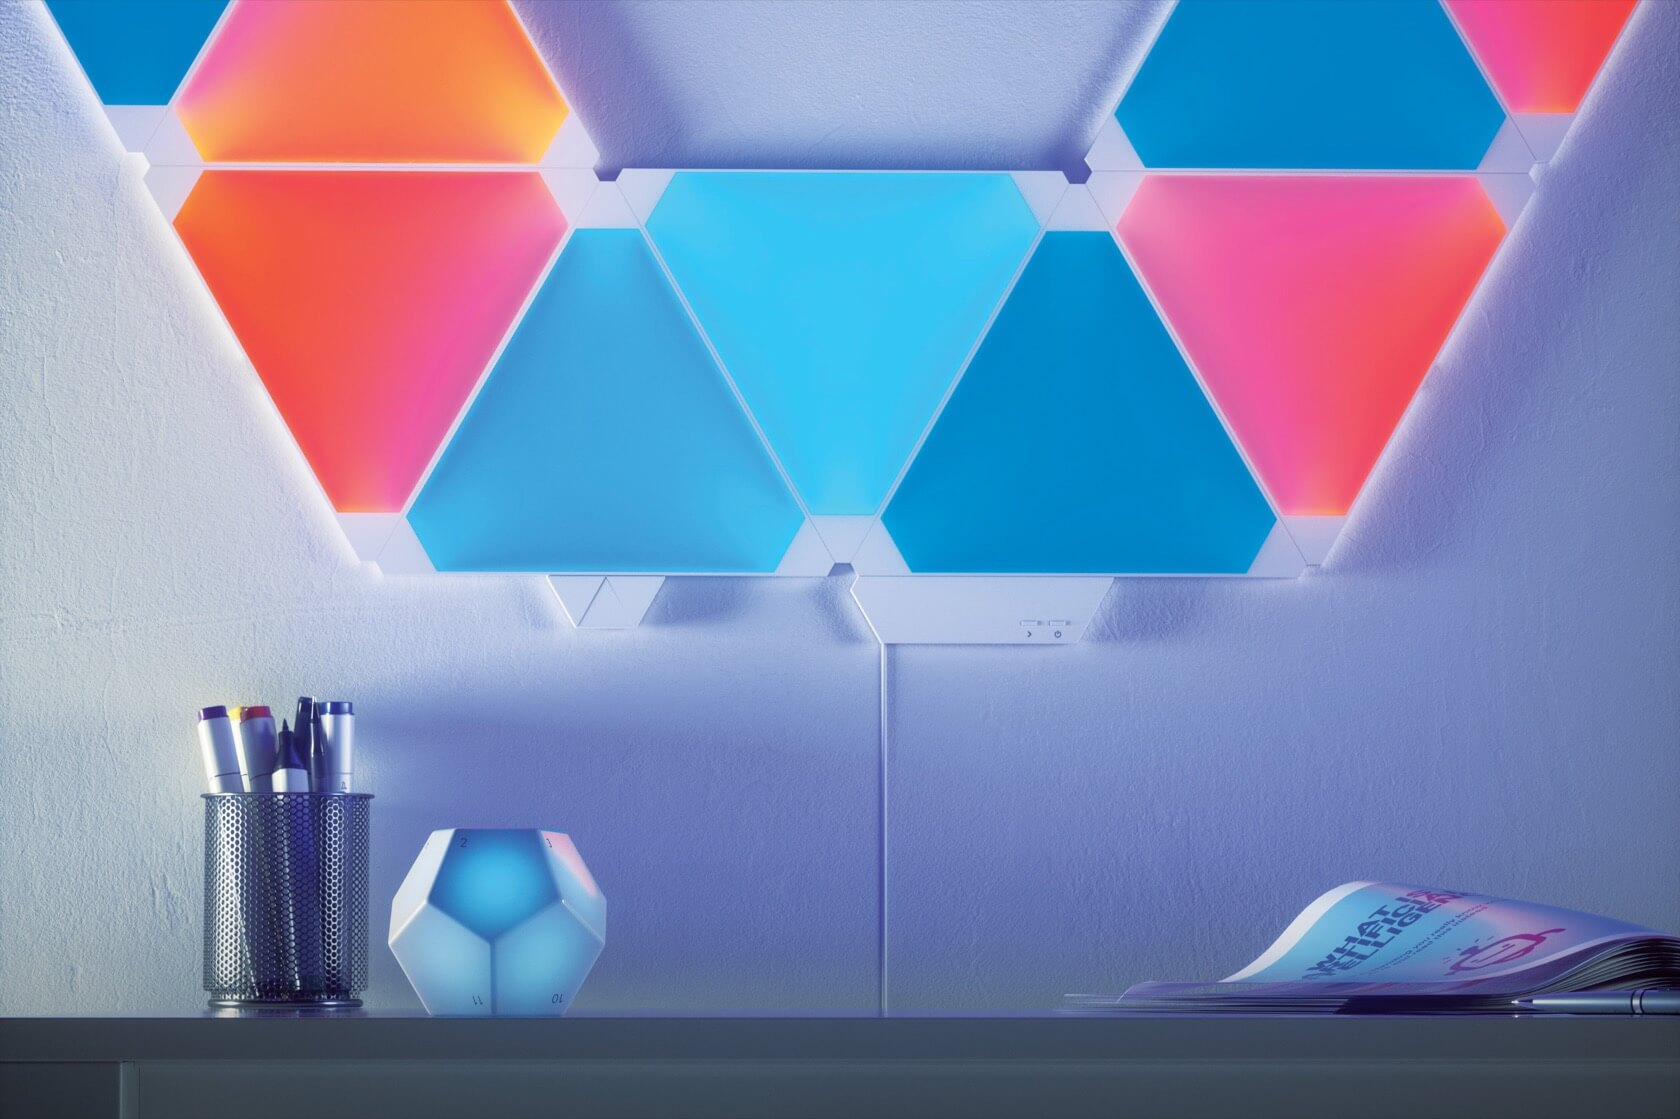 nanoleaf-remote-homekit-led-panels